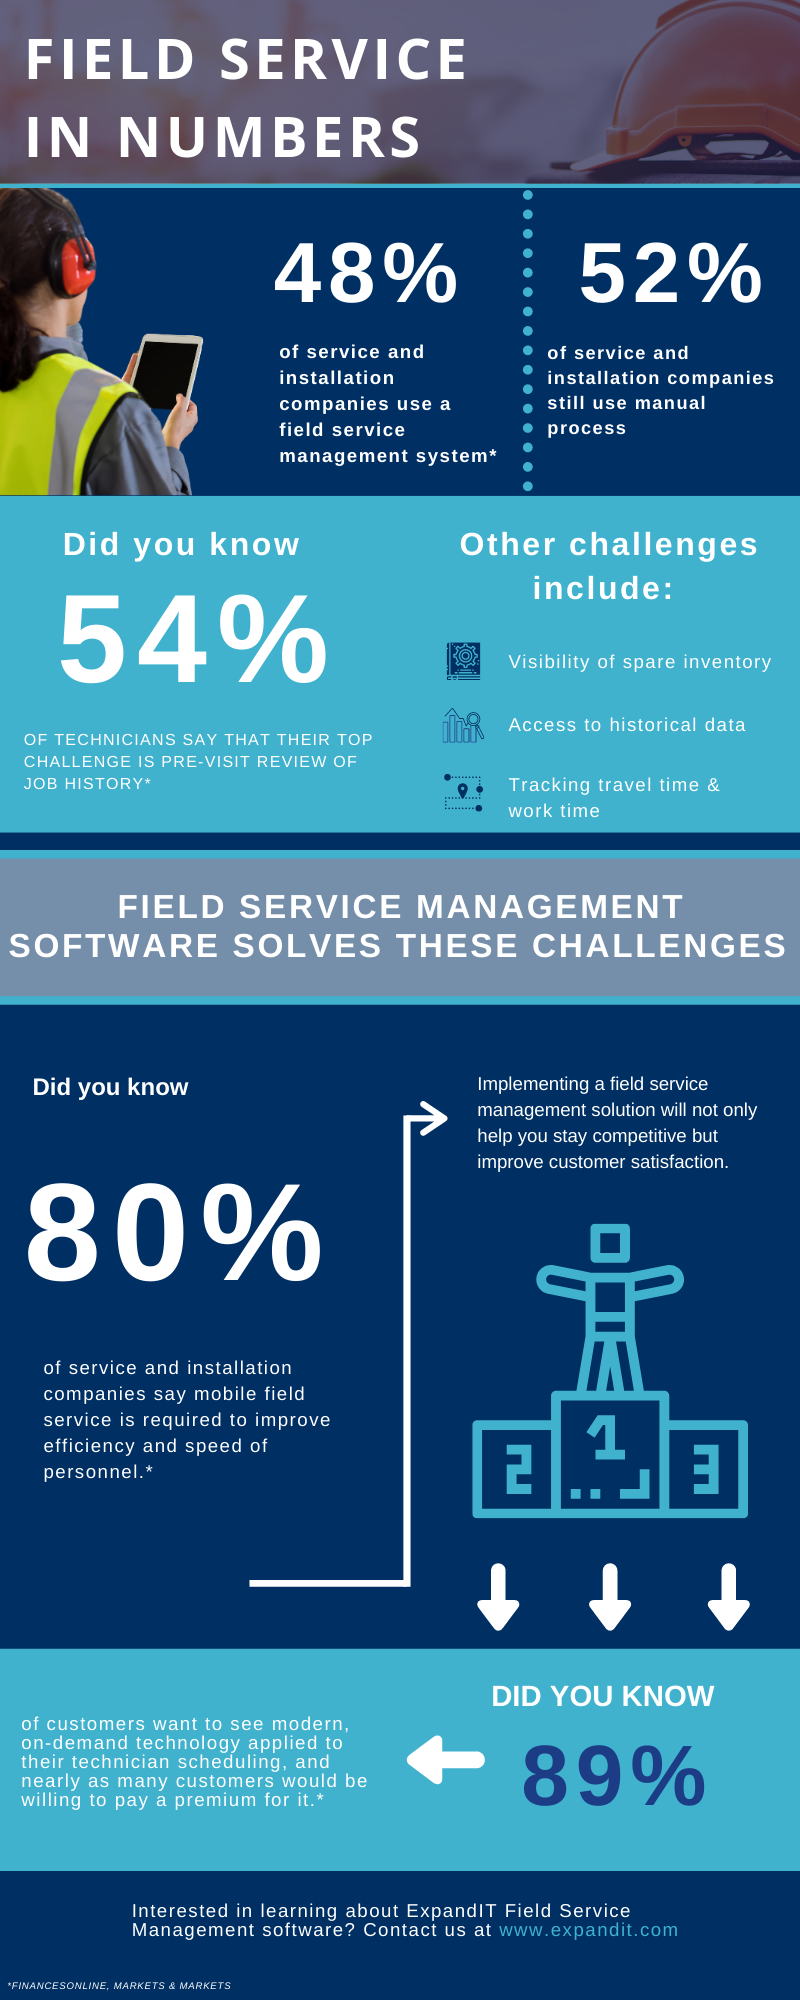 Field Service in Numbers infographic